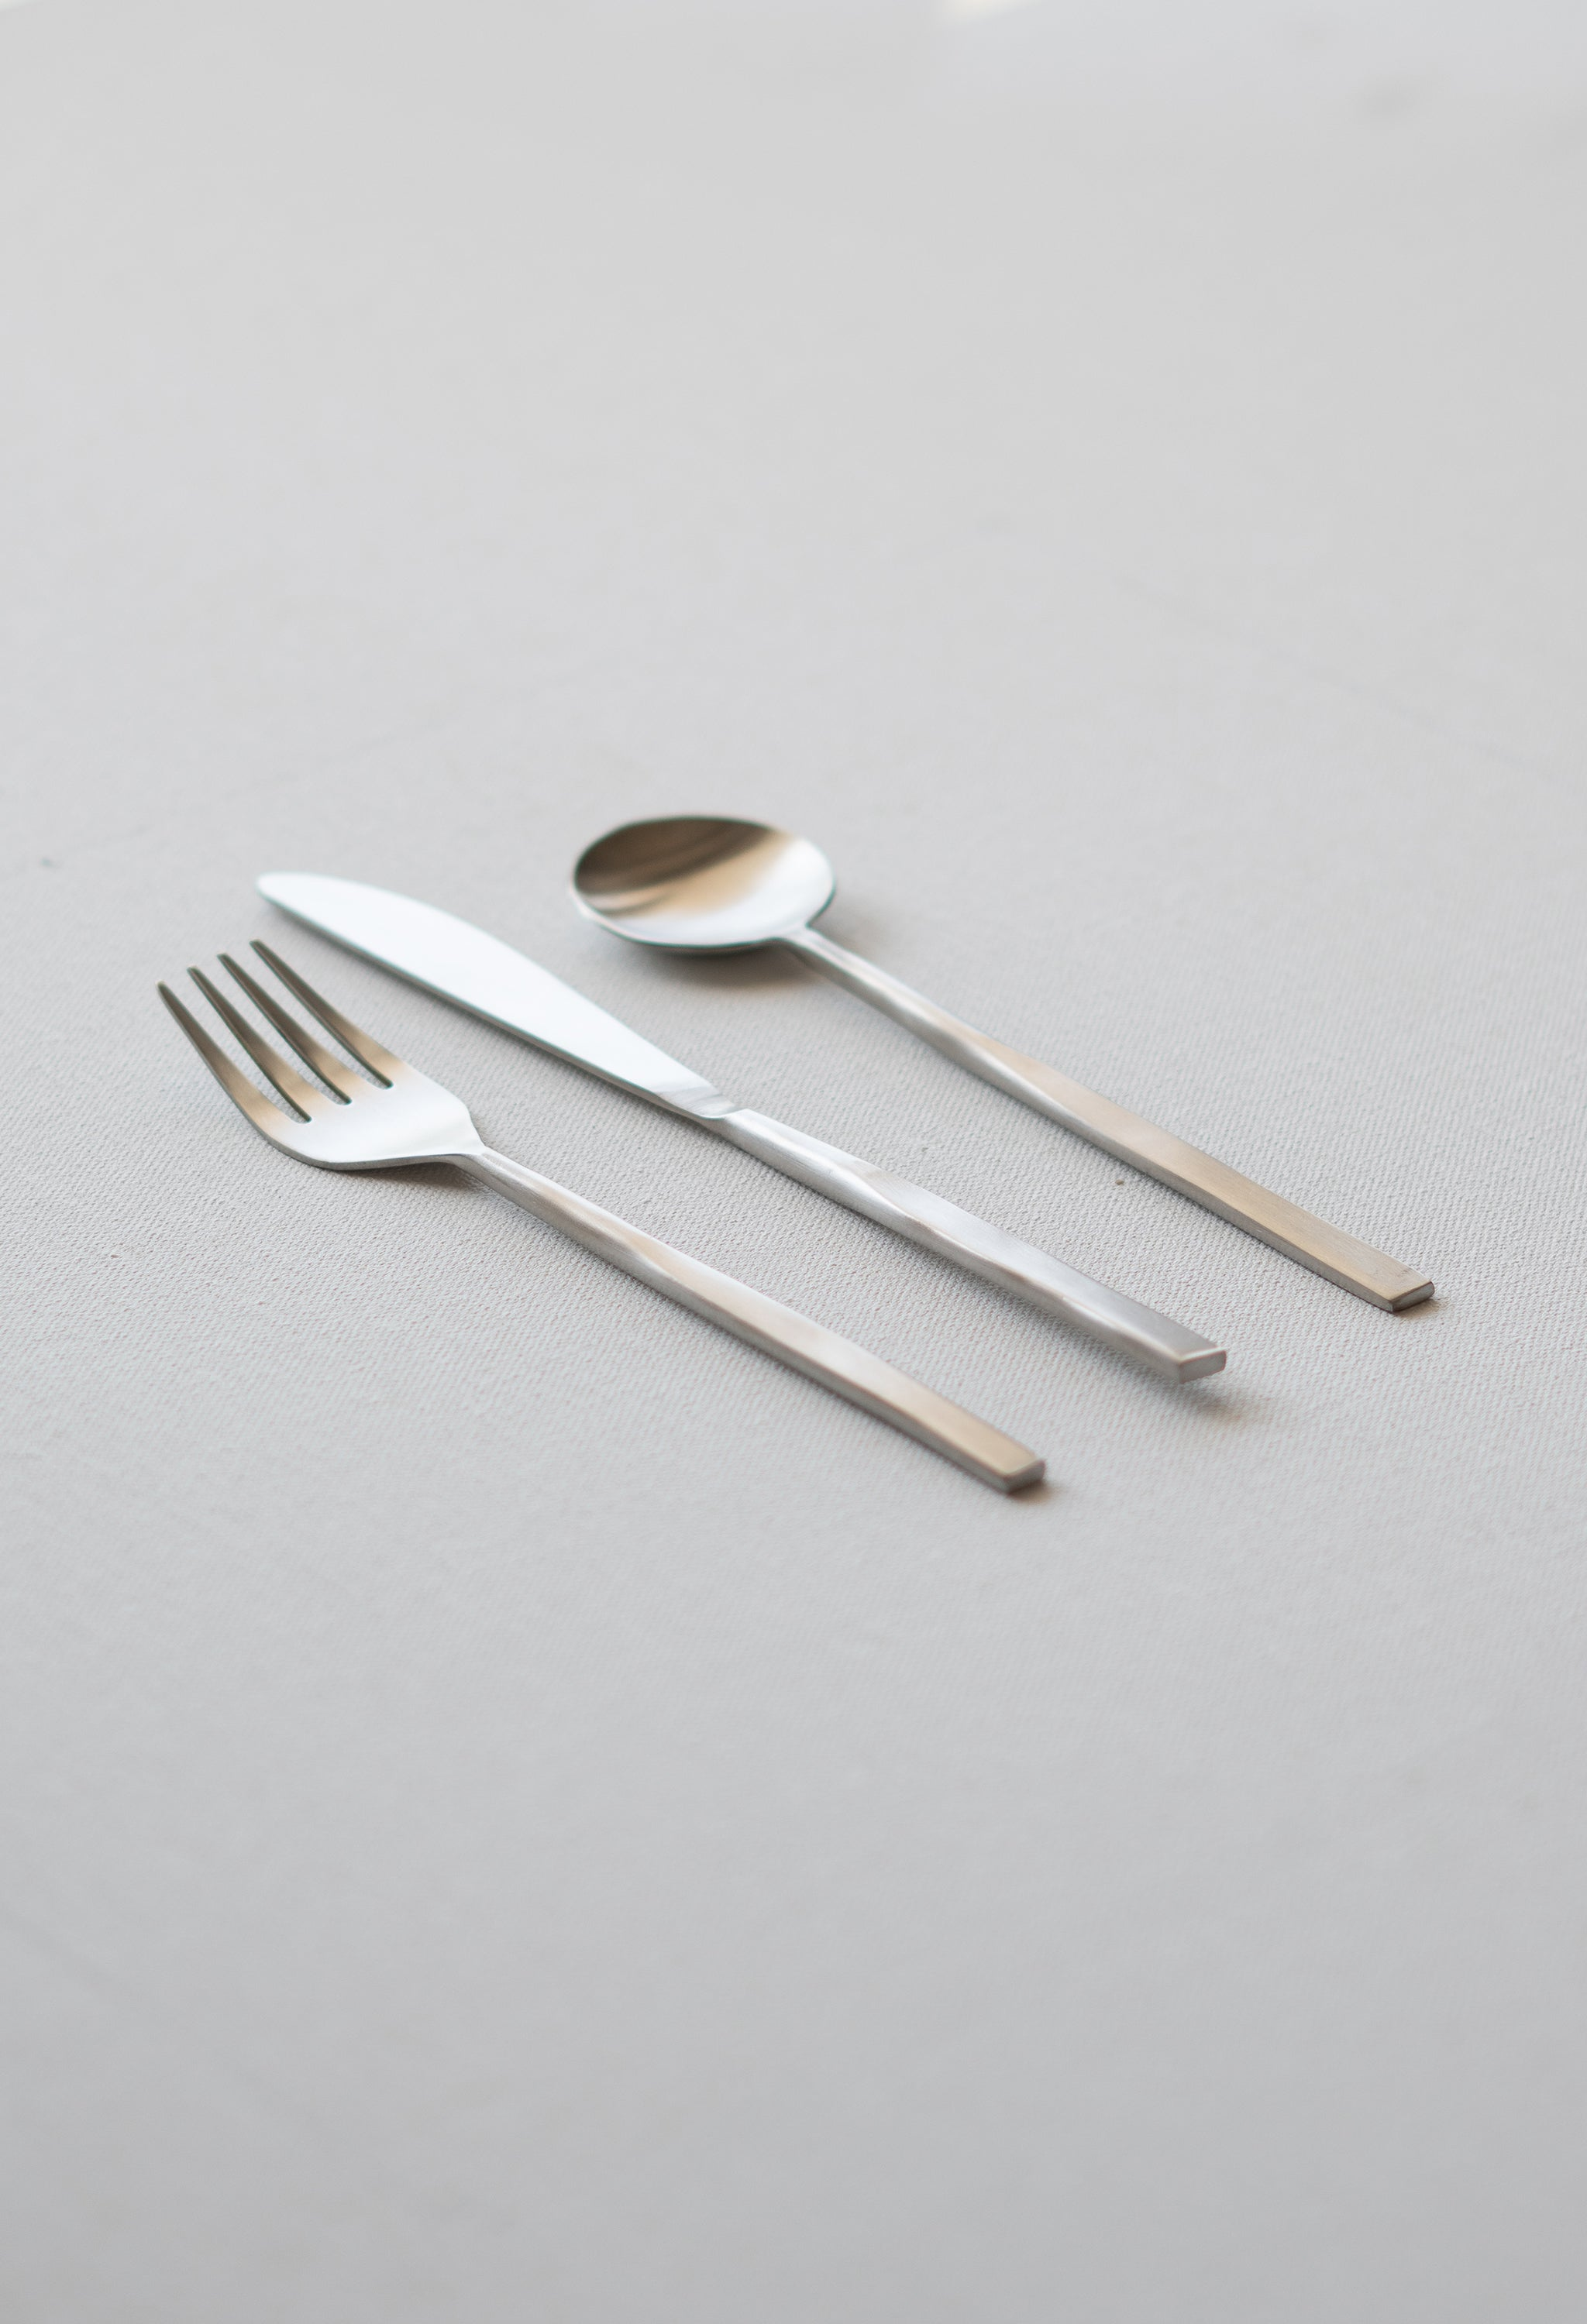 Wabi cutlery set by fleck